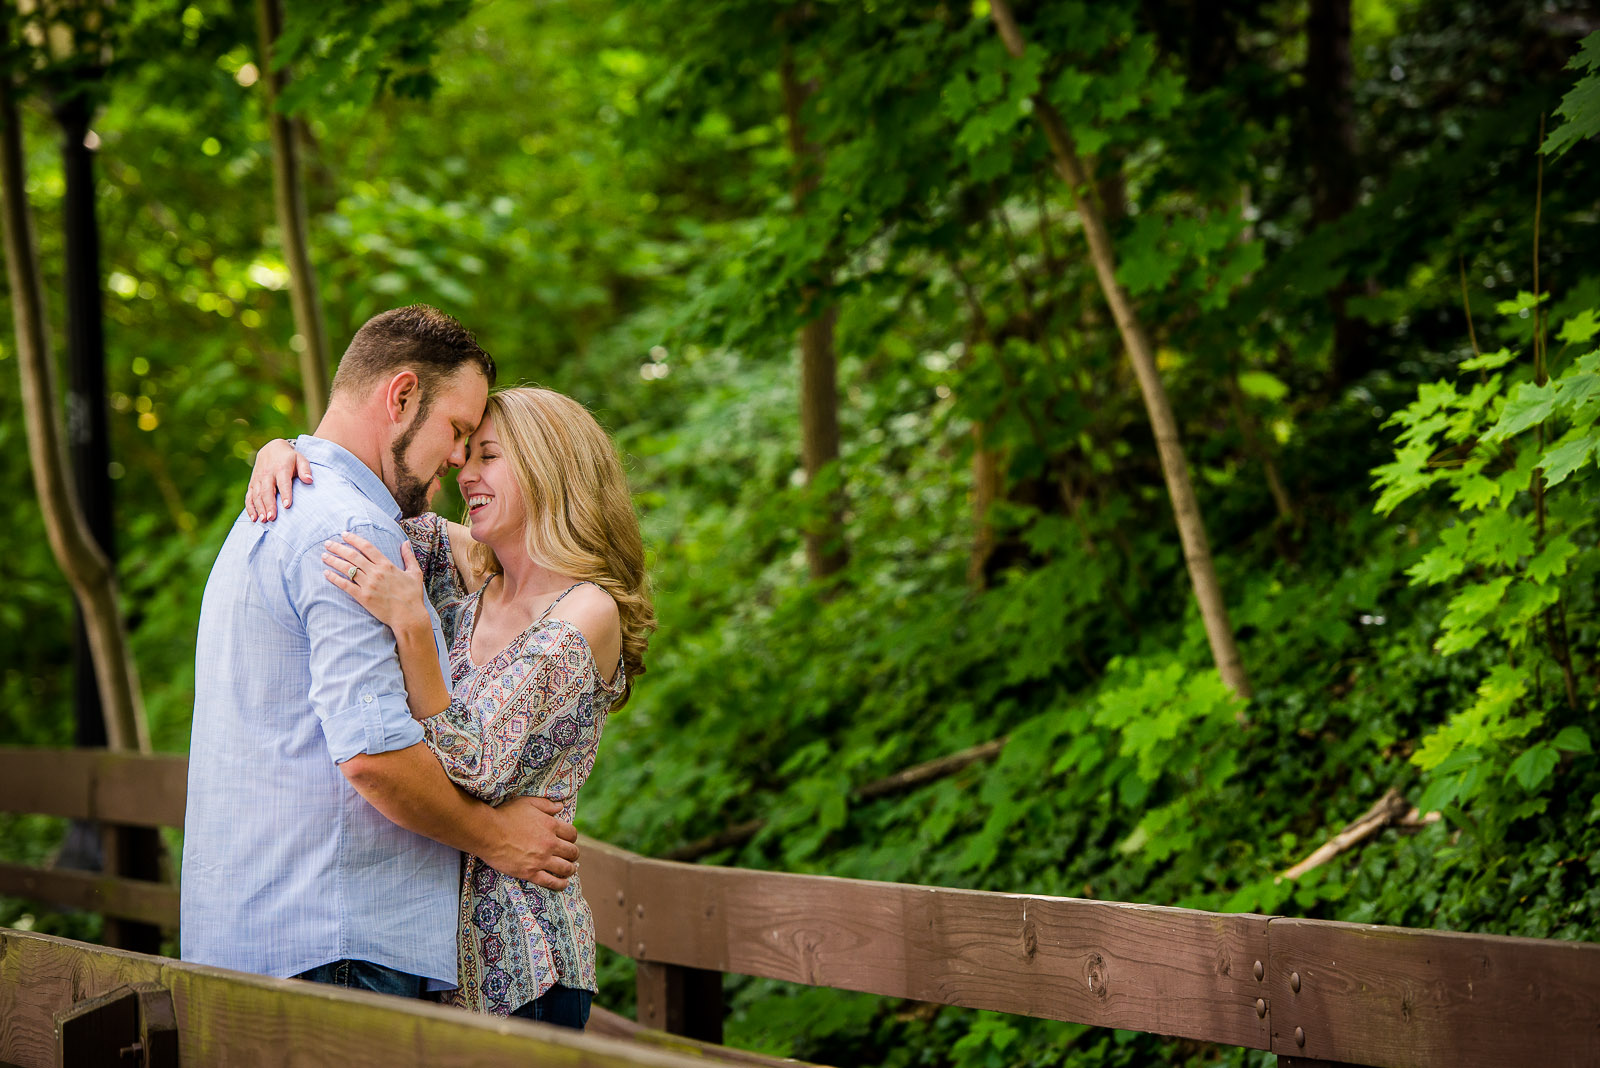 Eric_and_Christy_Photography_Blog_Kelly_Matt_Engagement-13